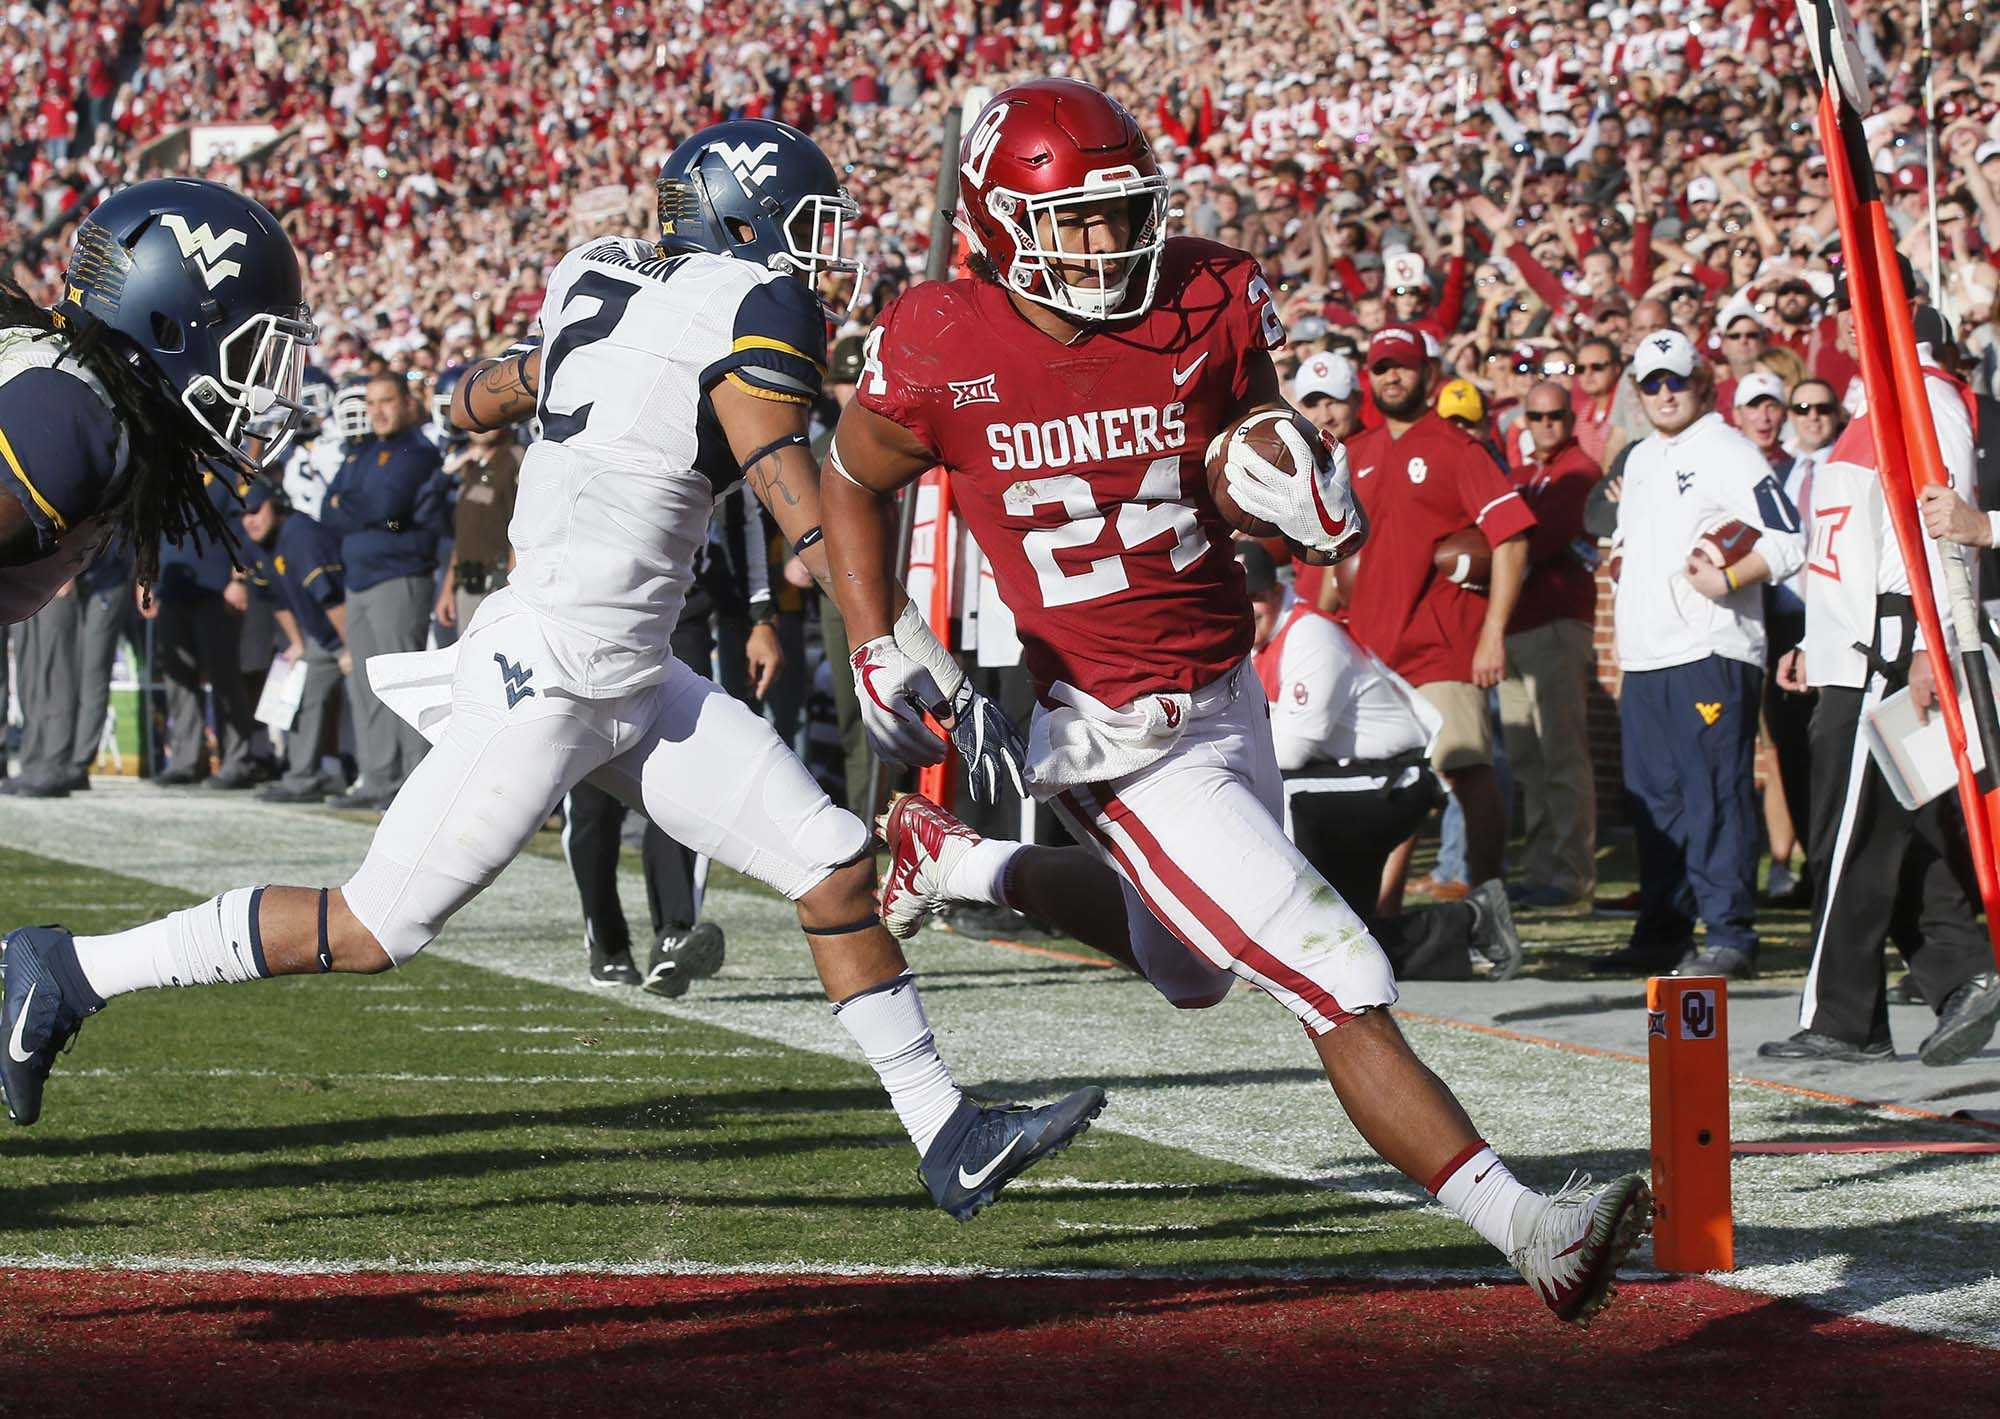 OU running back Rodney Anderson accused of rape in emergency protective order